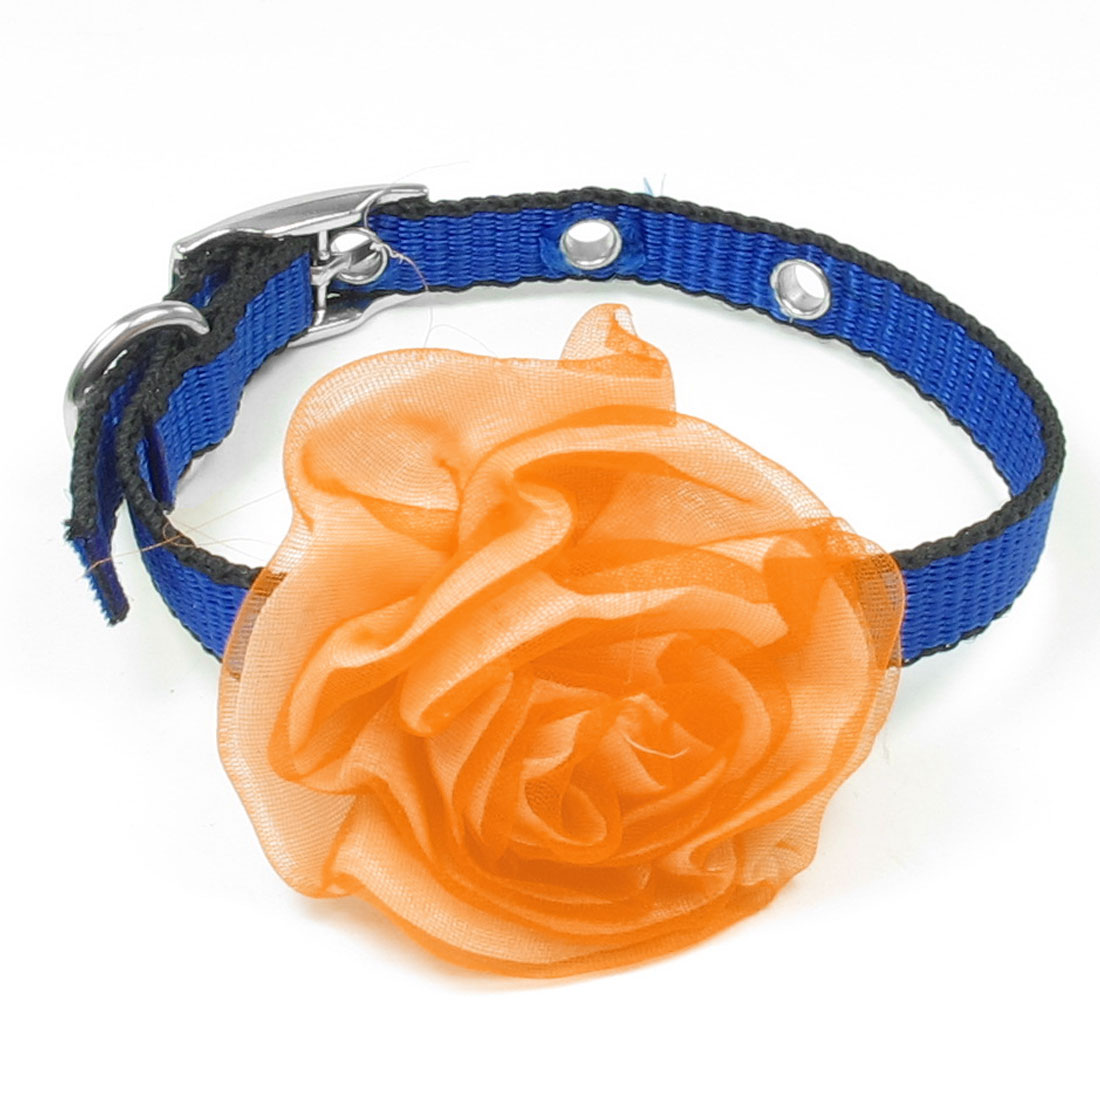 Single Pin Buckle Orange Flower Decor Blue Black Nylon Pet Cats Collar Necklace